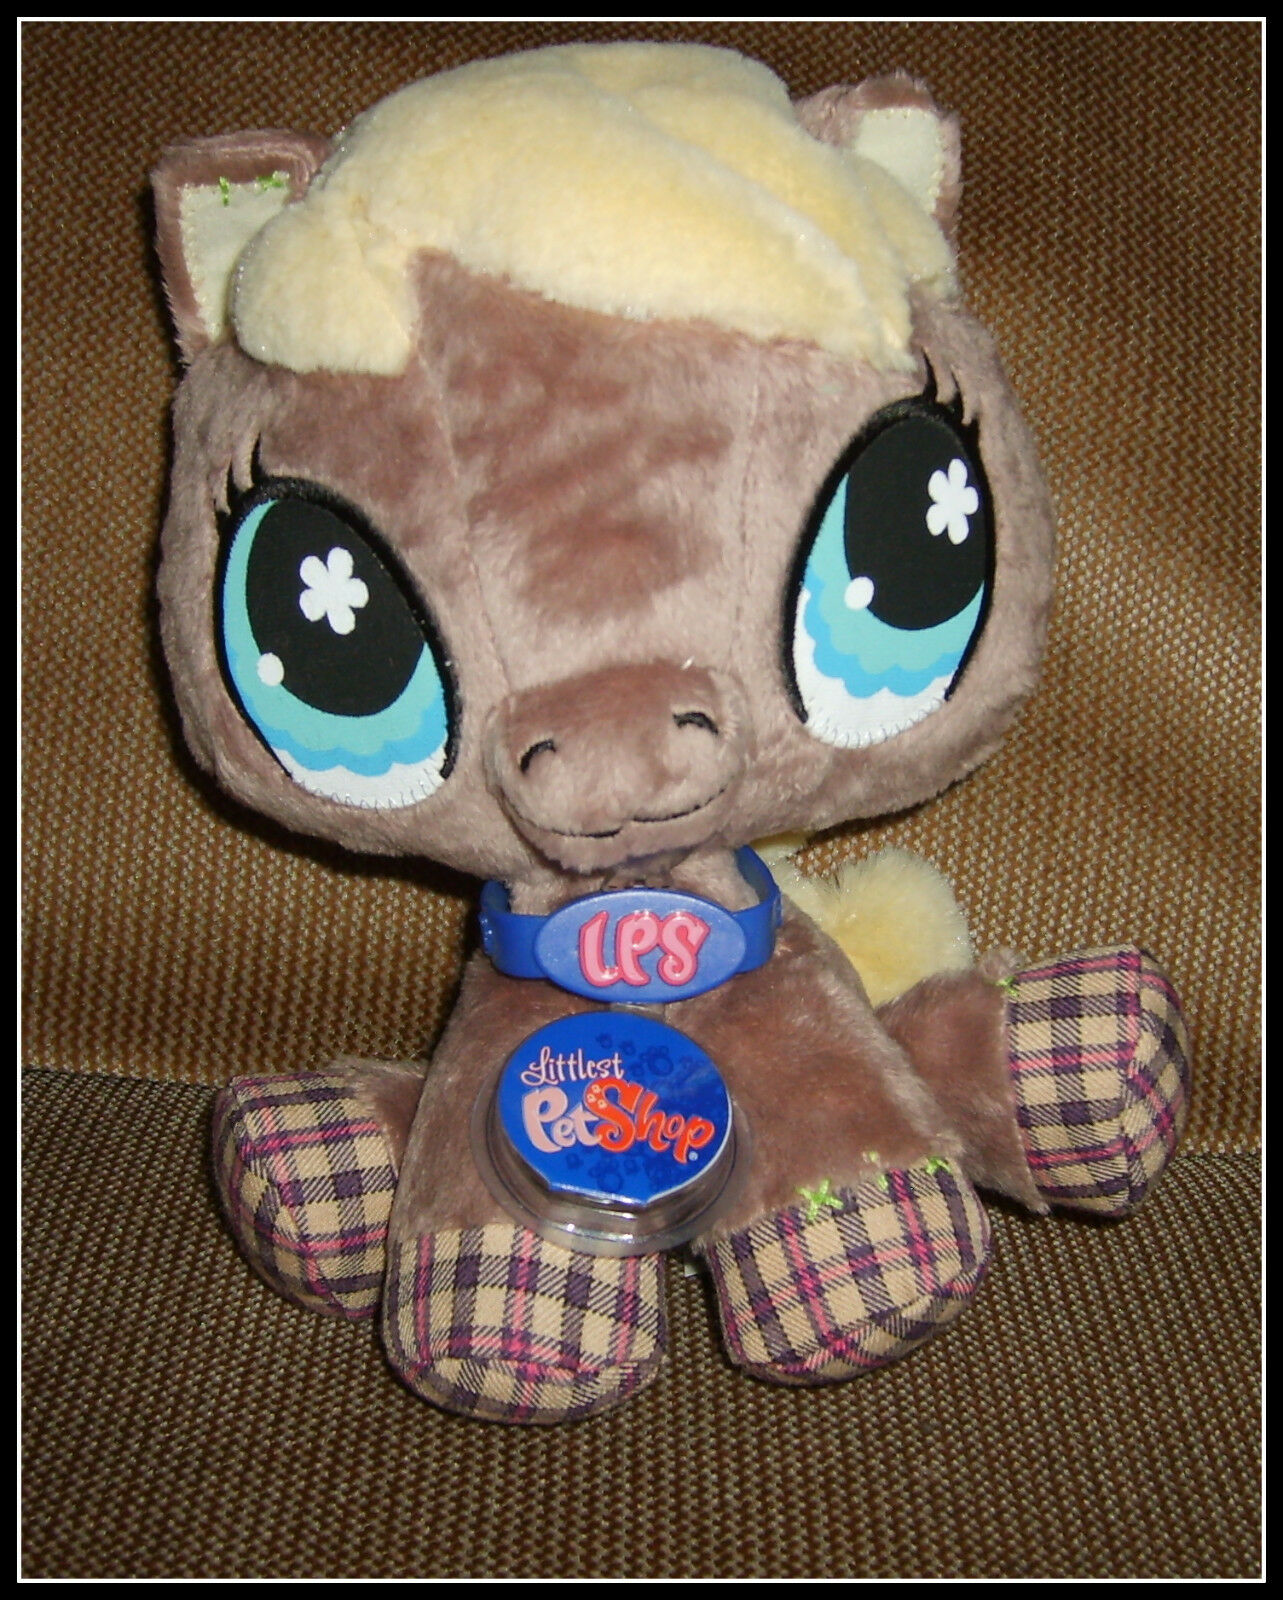 Littlest Pet Shop VIP Horse Plush Plush Plush Toy- NWT Sealed Unused Code 2007 Release, RARE 78ff79